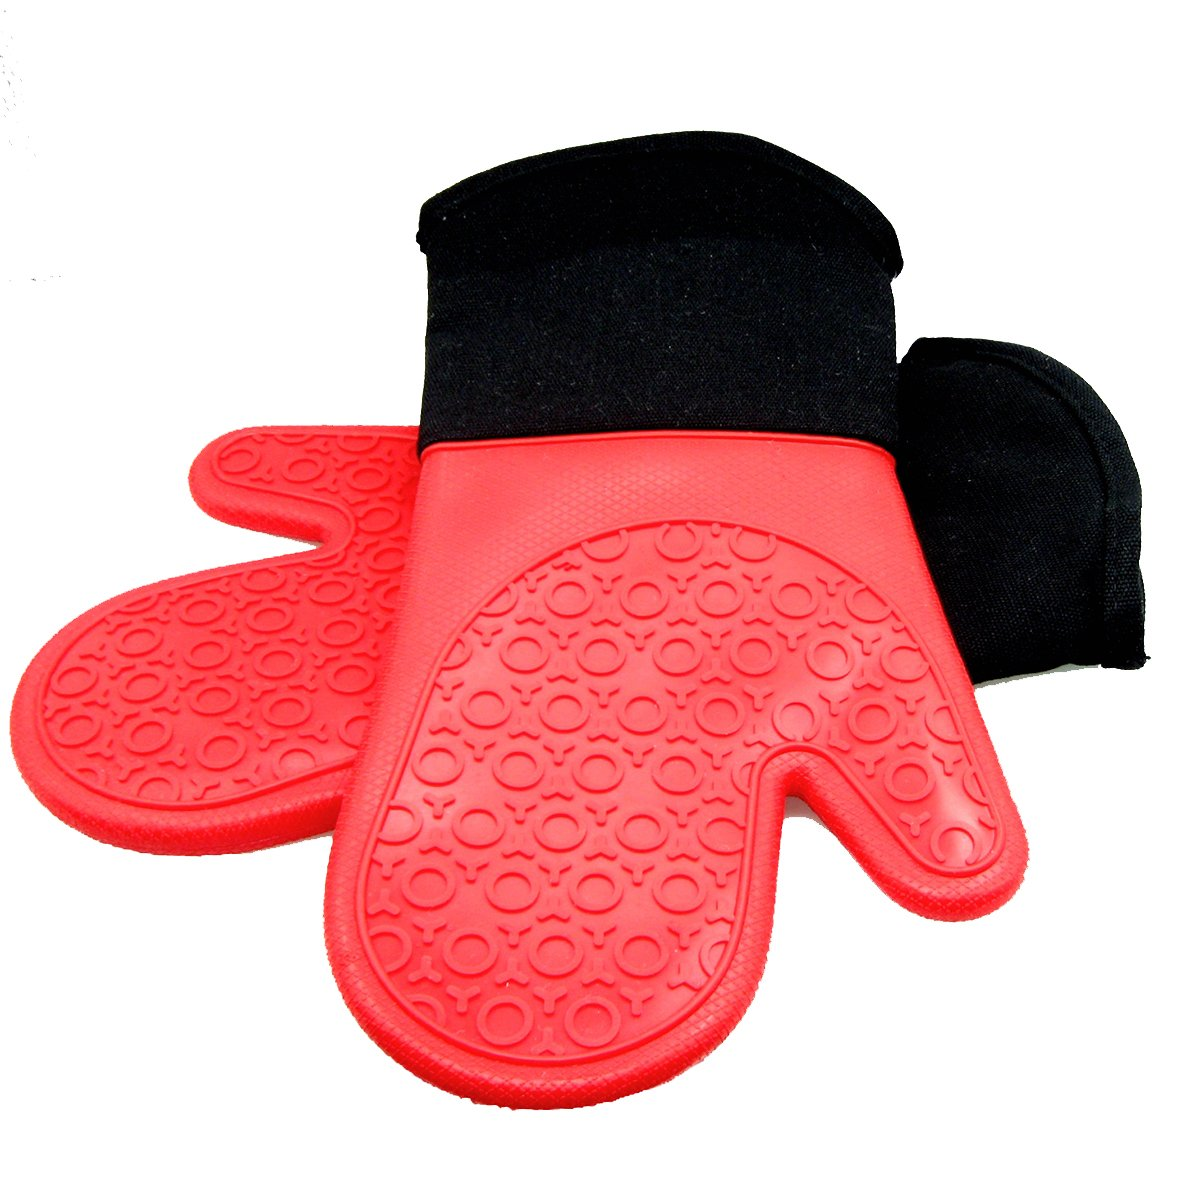 HOMWE Silicone Oven Mitts with Quilted Cotton Lining Review